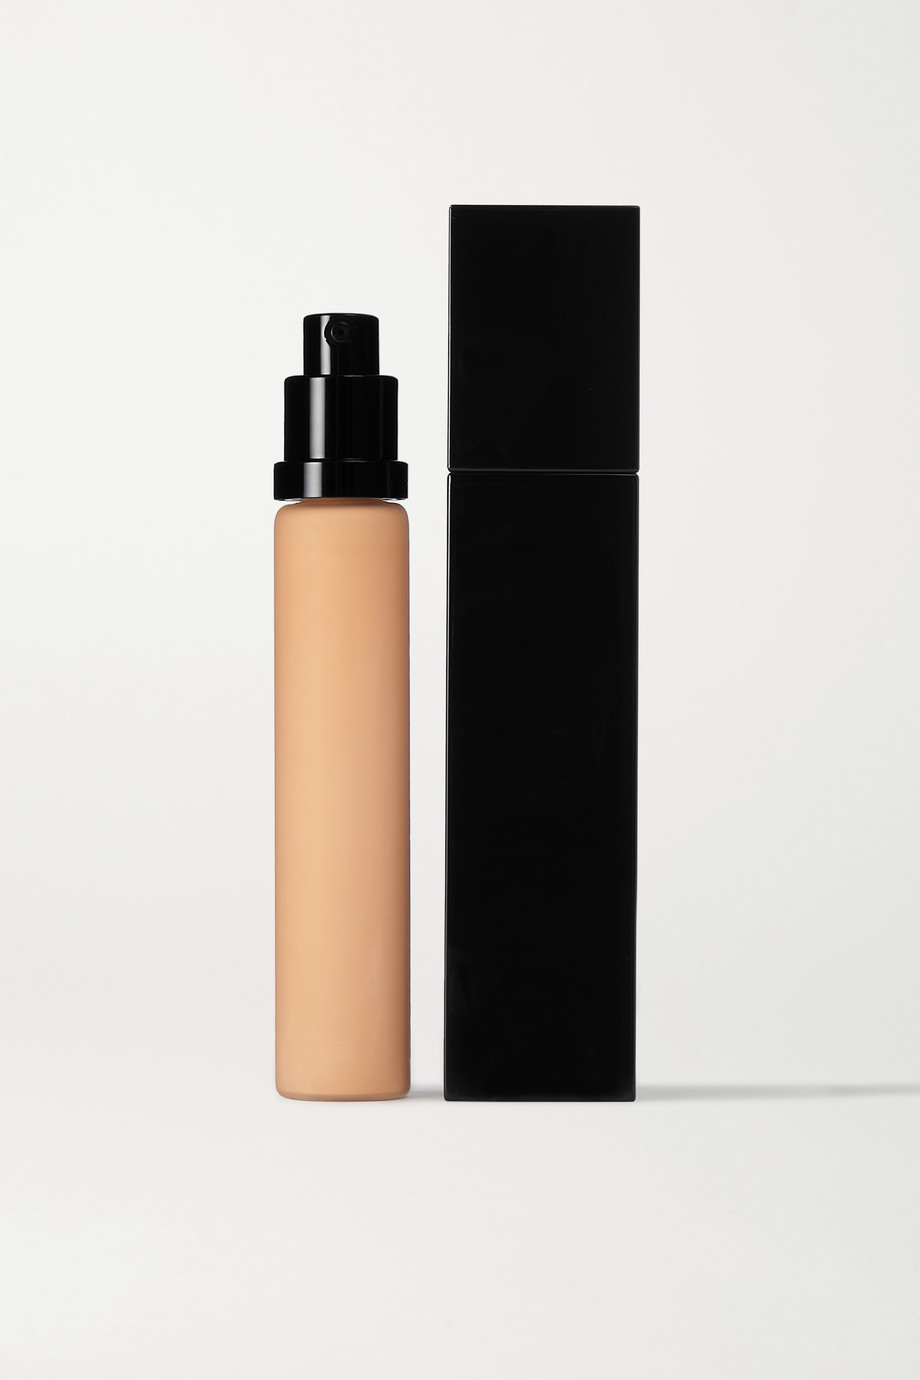 Serge Lutens Spectral L'Impalpable Foundation – I40, 30 ml – Foundation